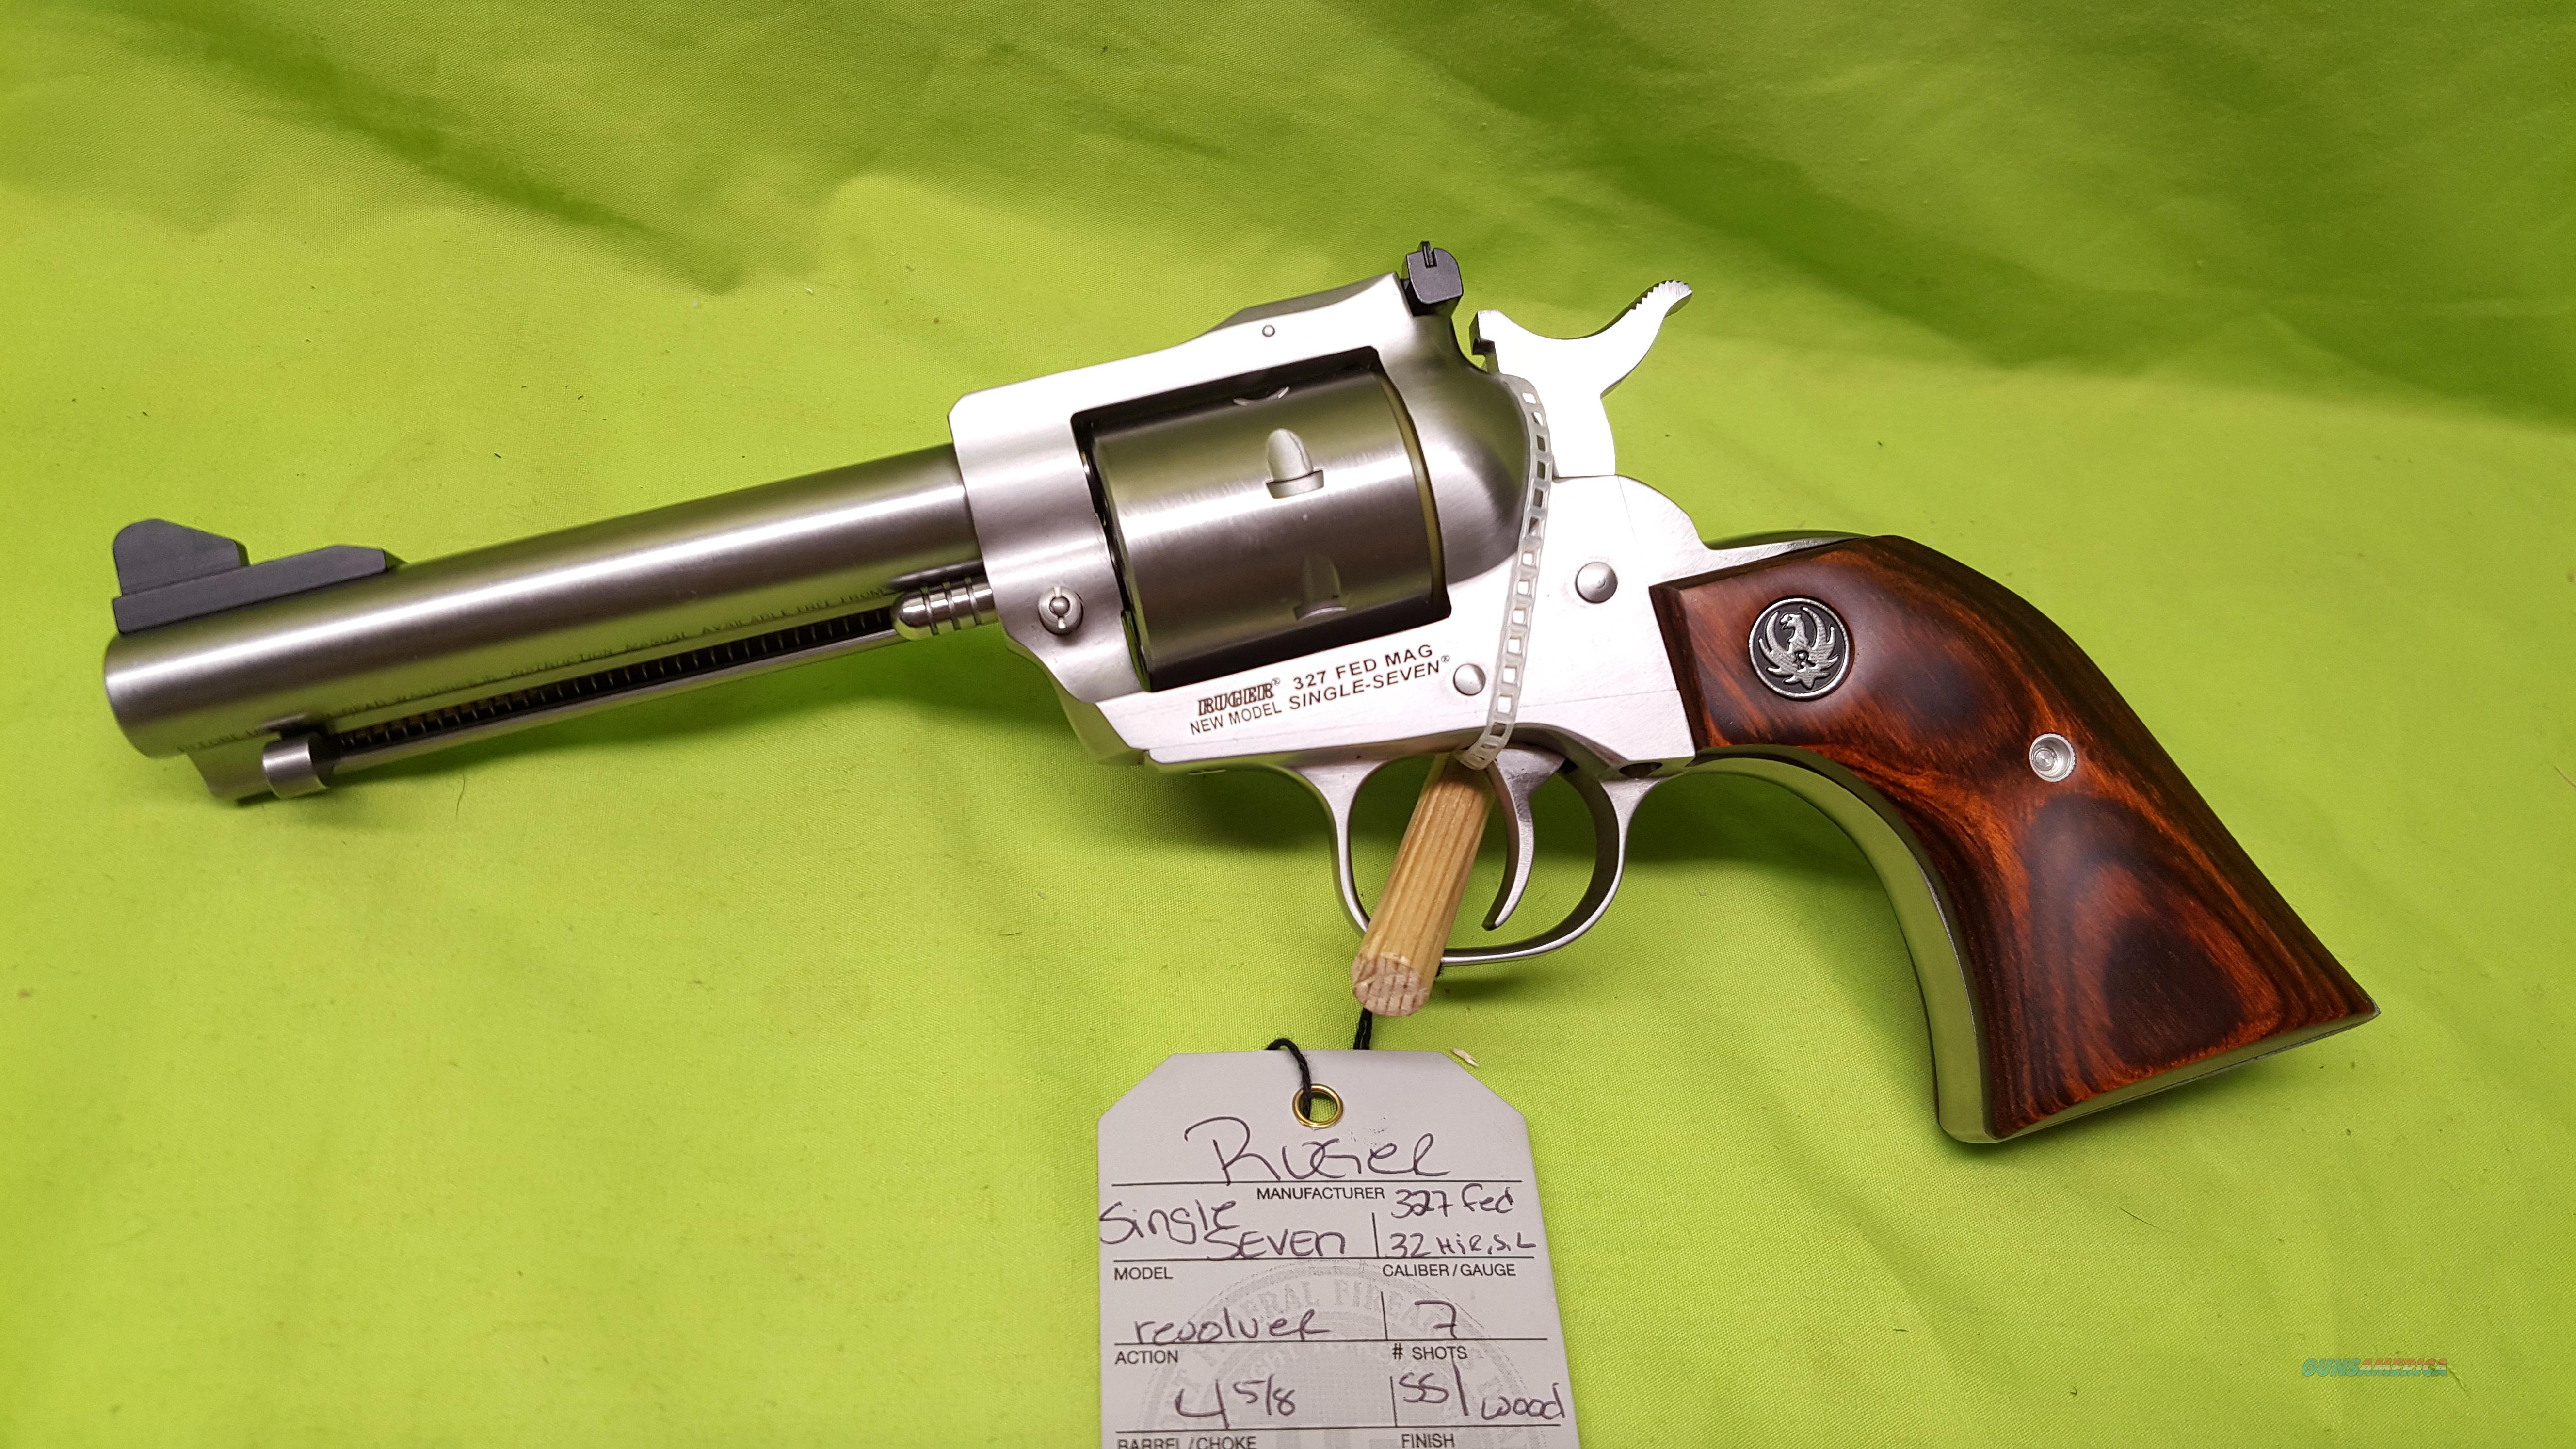 RUGER SINGLE SEVEN 327 FEDERAL MAG 4 5/8 NEW 8161  Guns > Pistols > Ruger Single Action Revolvers > Single Six Type